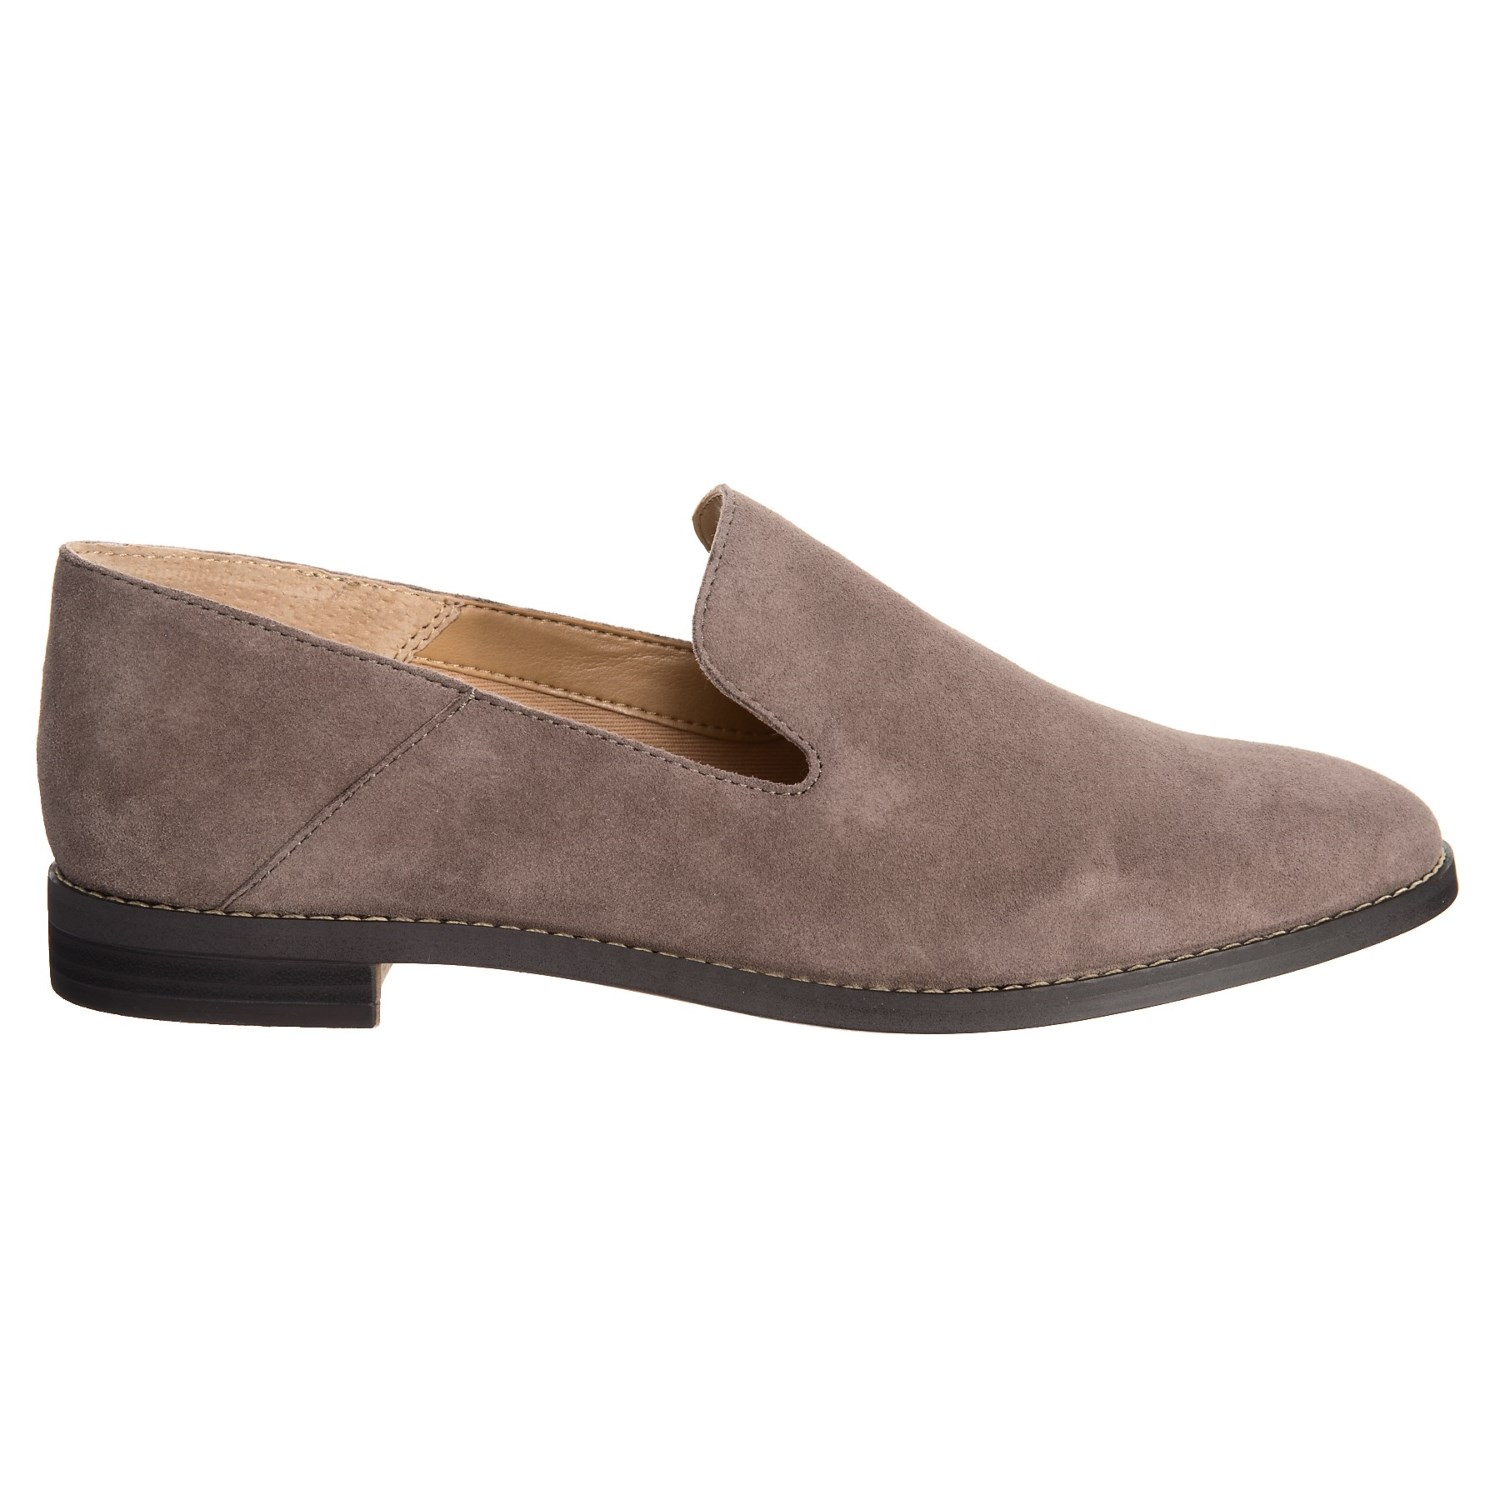 356d2057376 Franco Sarto Haylee Loafers (For Women) - Save 42%